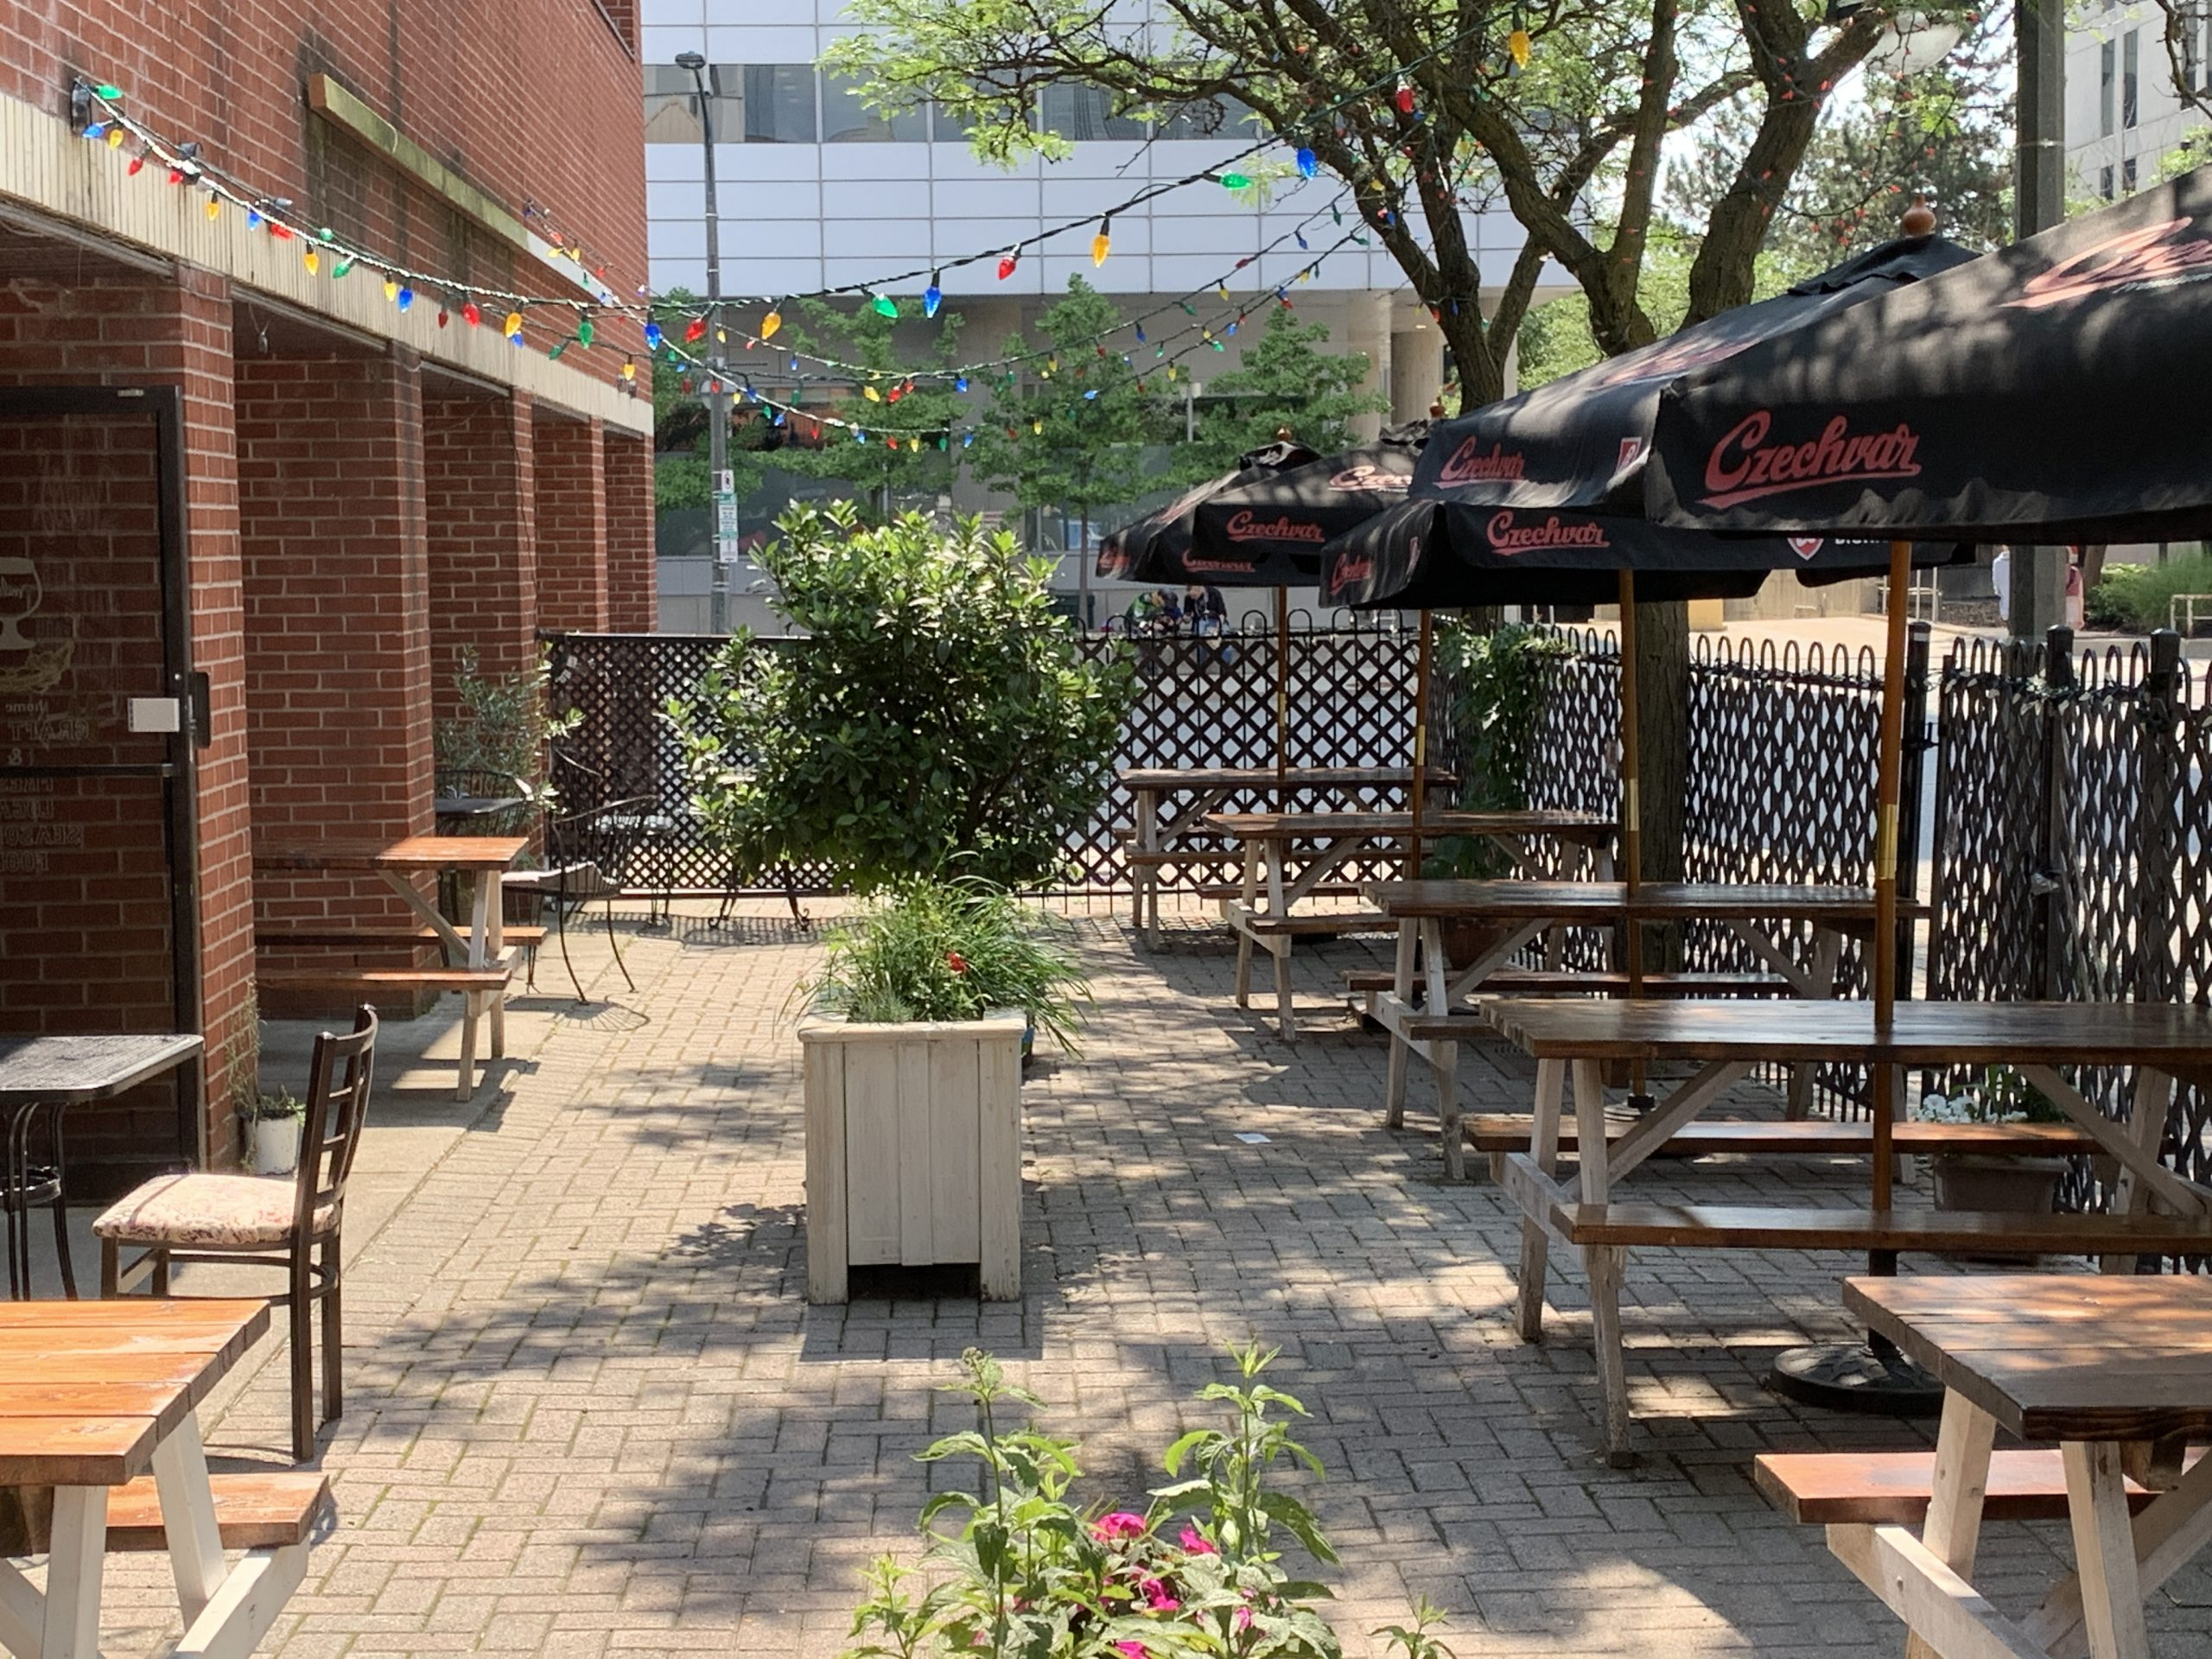 A patio with picnic tables, umbrellas, planters, and stringed lights.